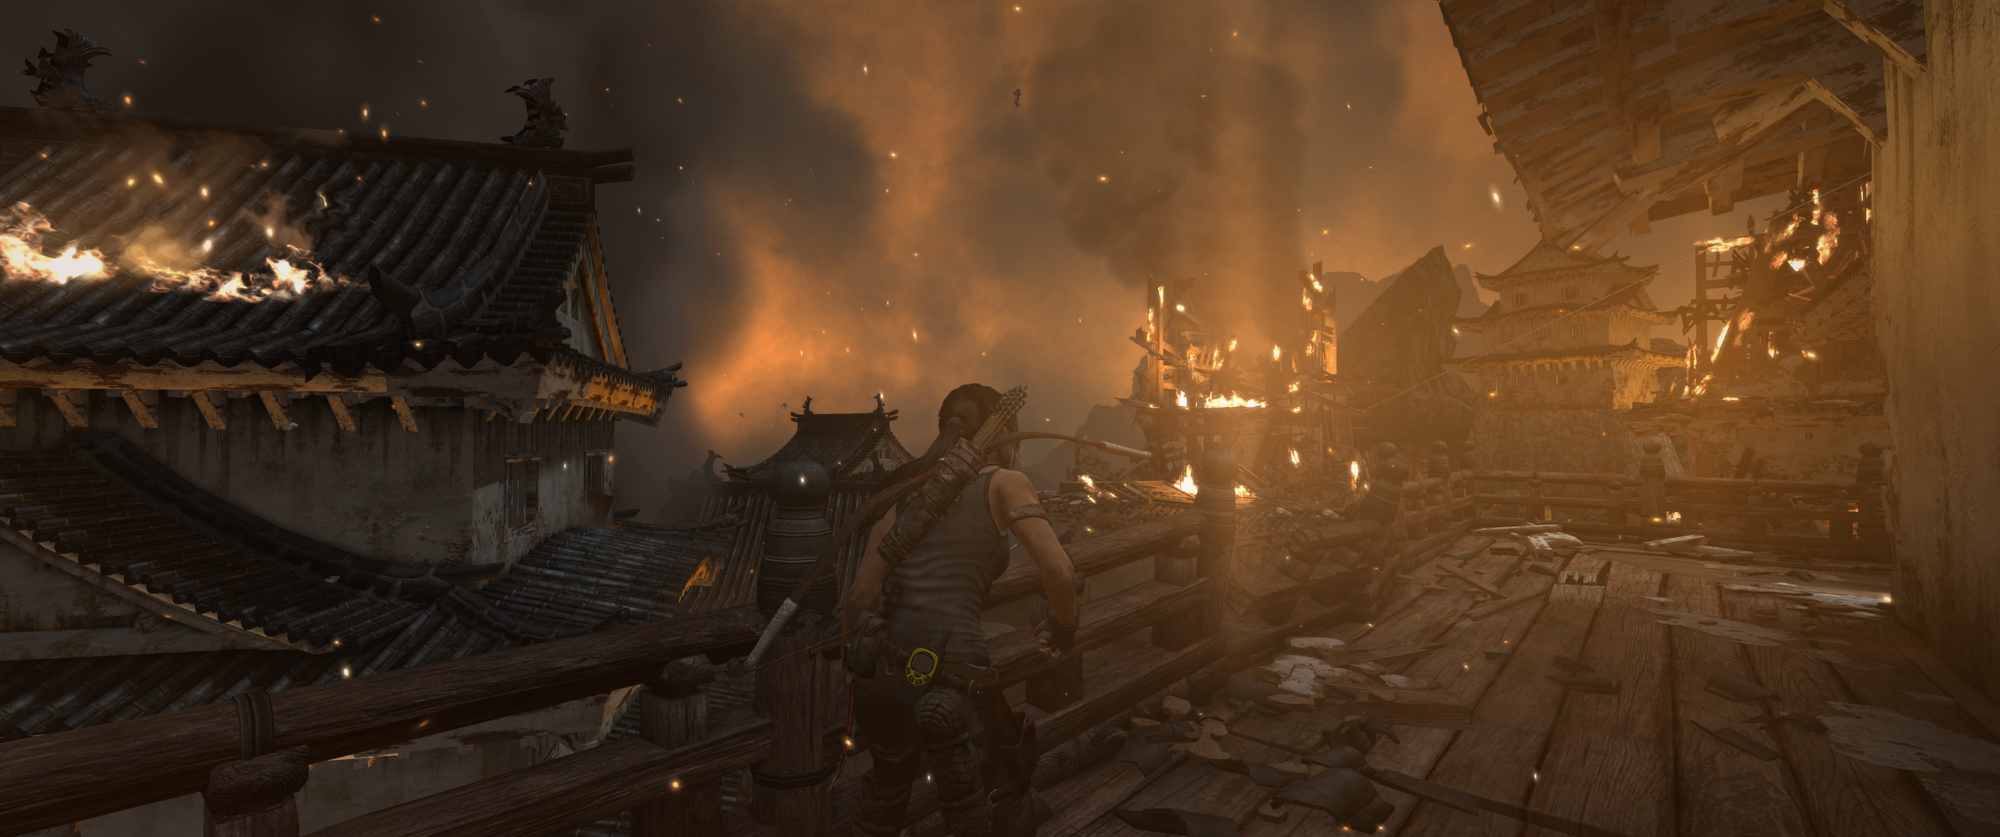 TombRaider_2018_07_24_22_31_39_879.png